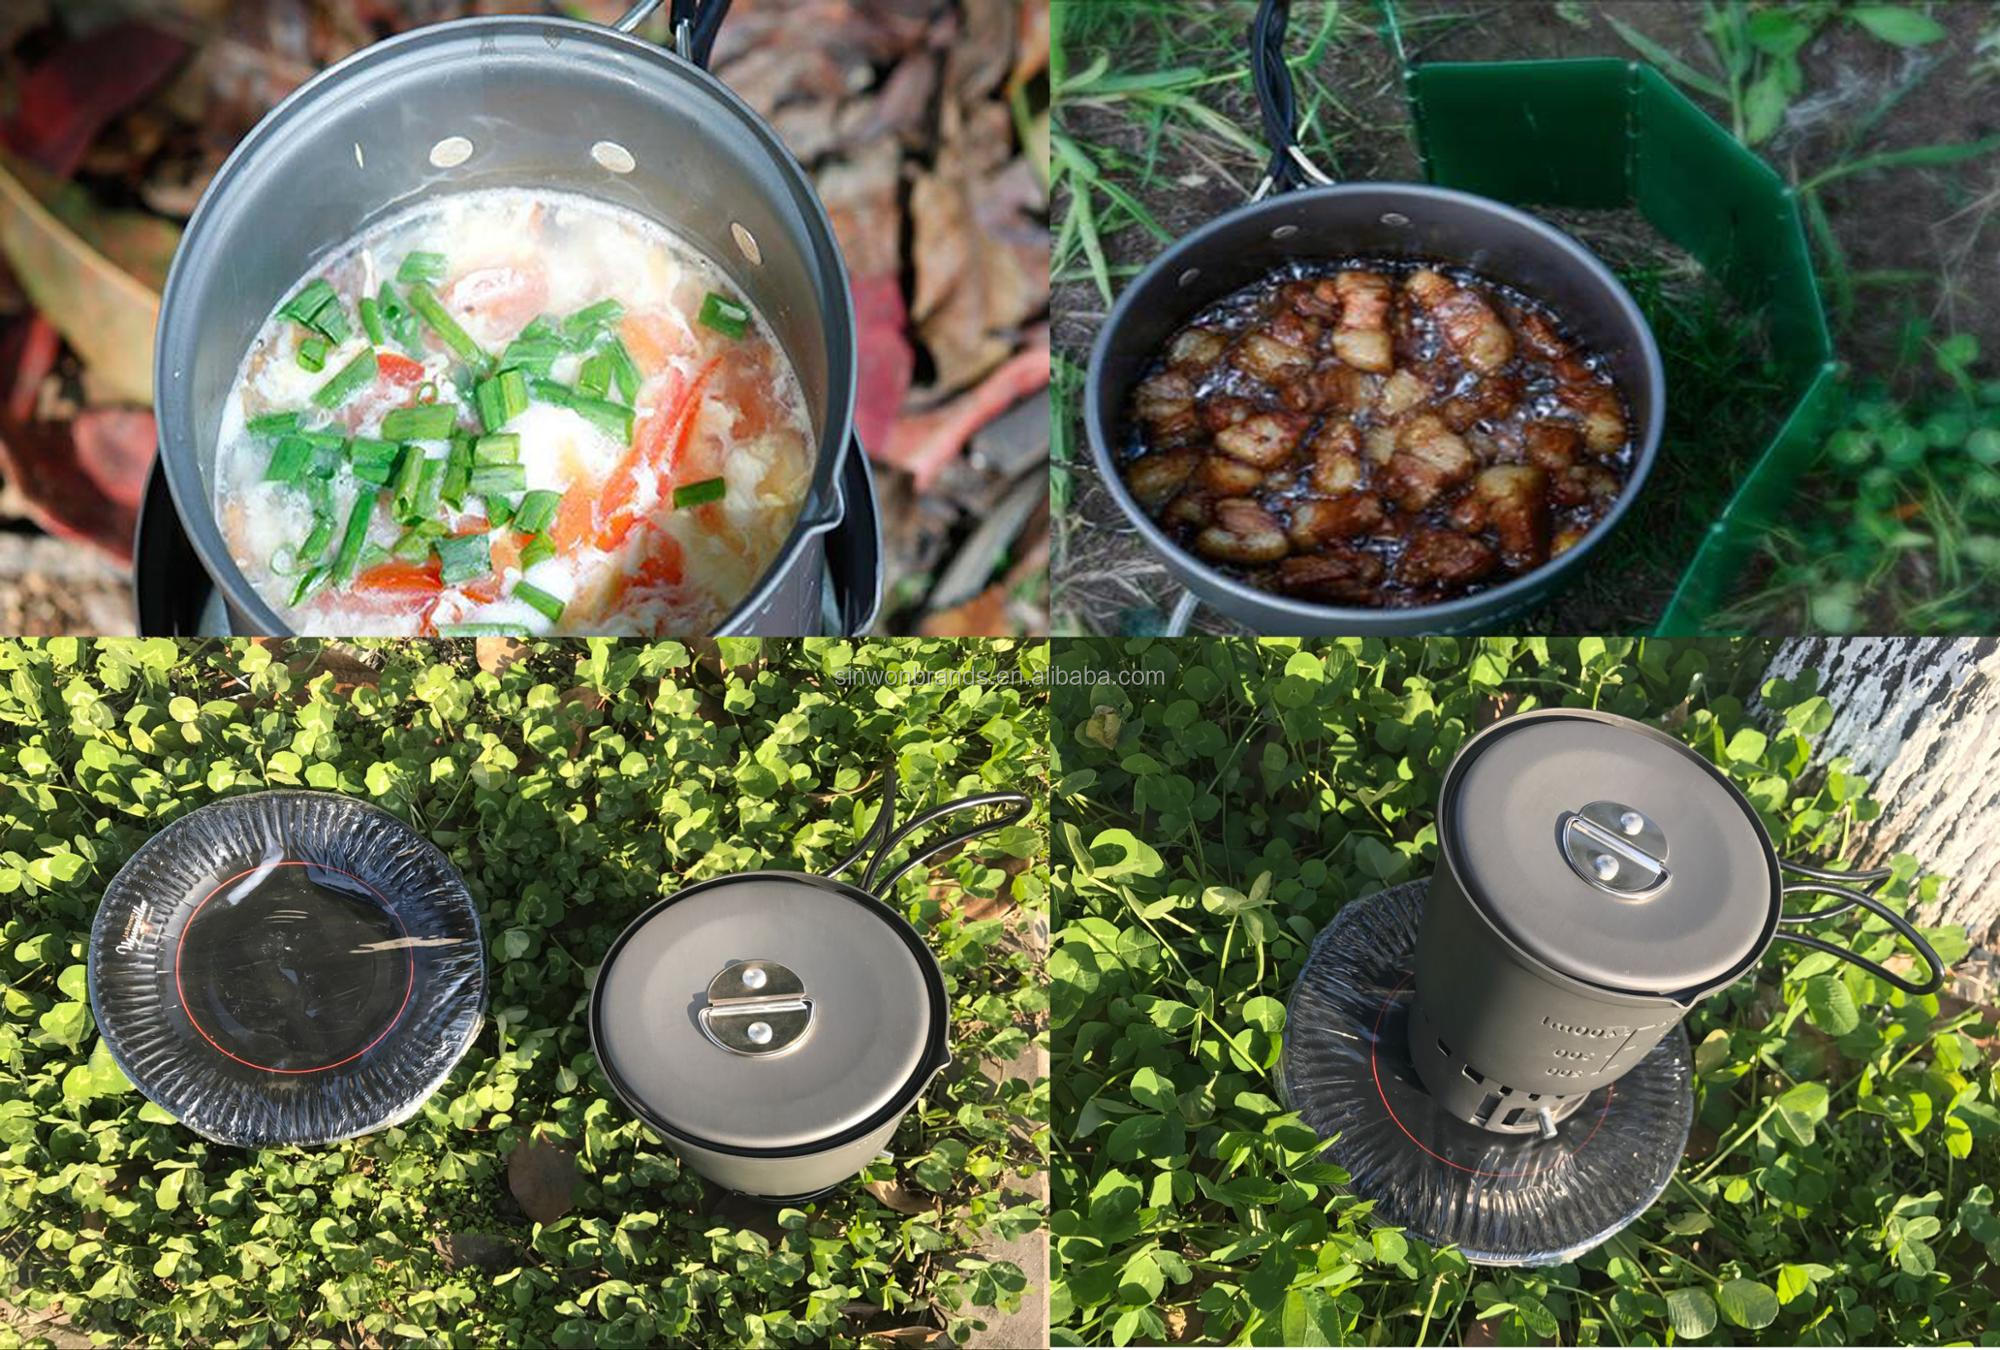 1-2 Person Picnic Stove Pot Set Camping BBQ Tableware Kit Cooker